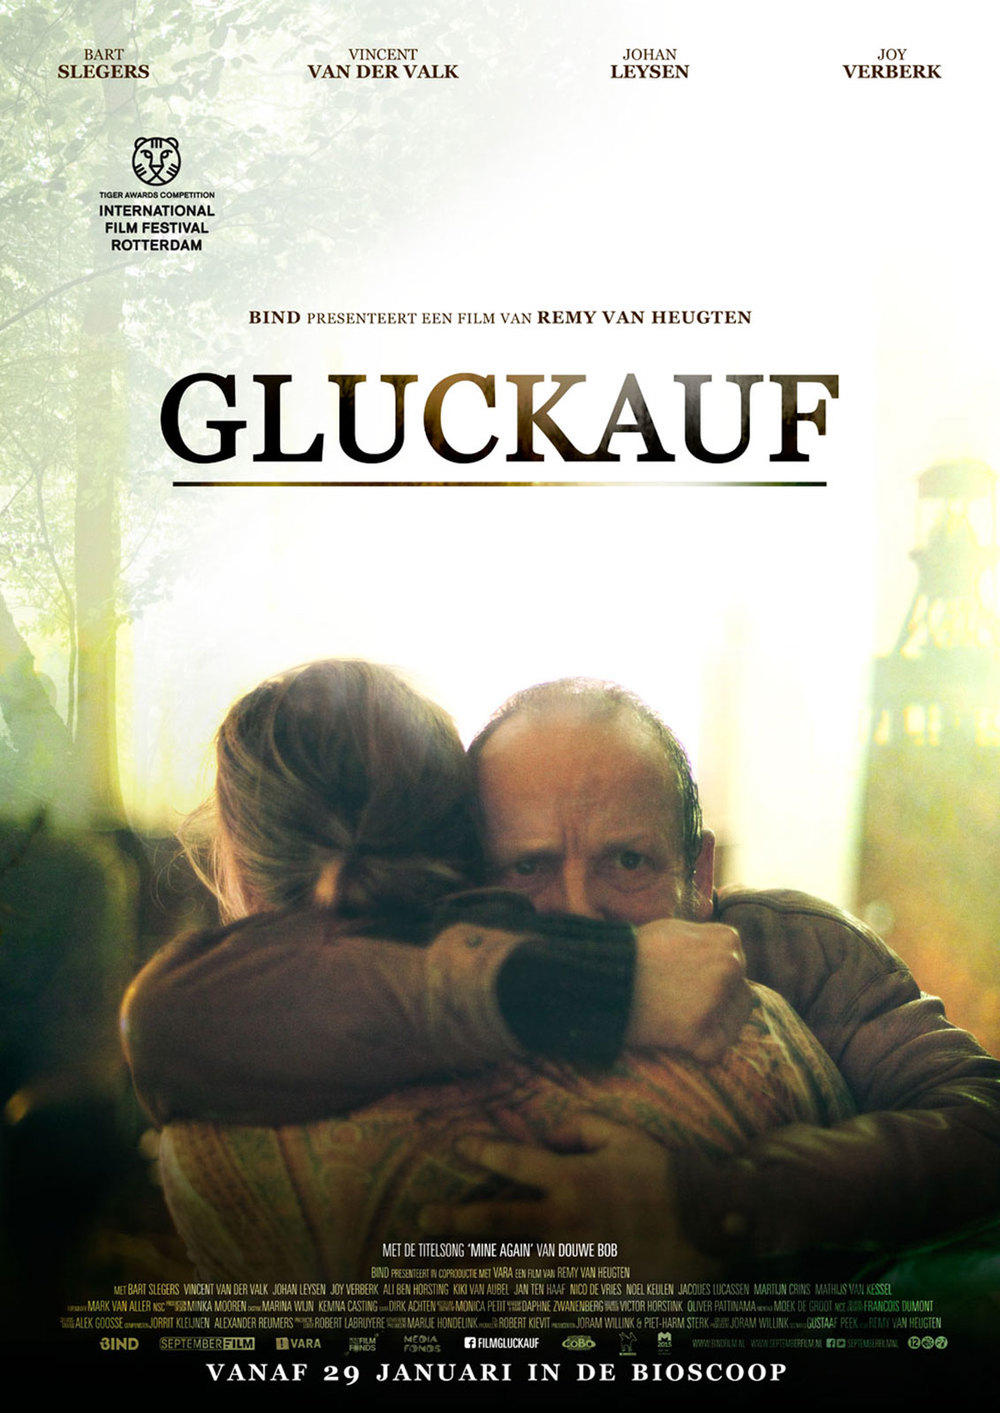 Gluckauf - Orchestrated and Conducted by Michelino 'Michel' Bisceglia